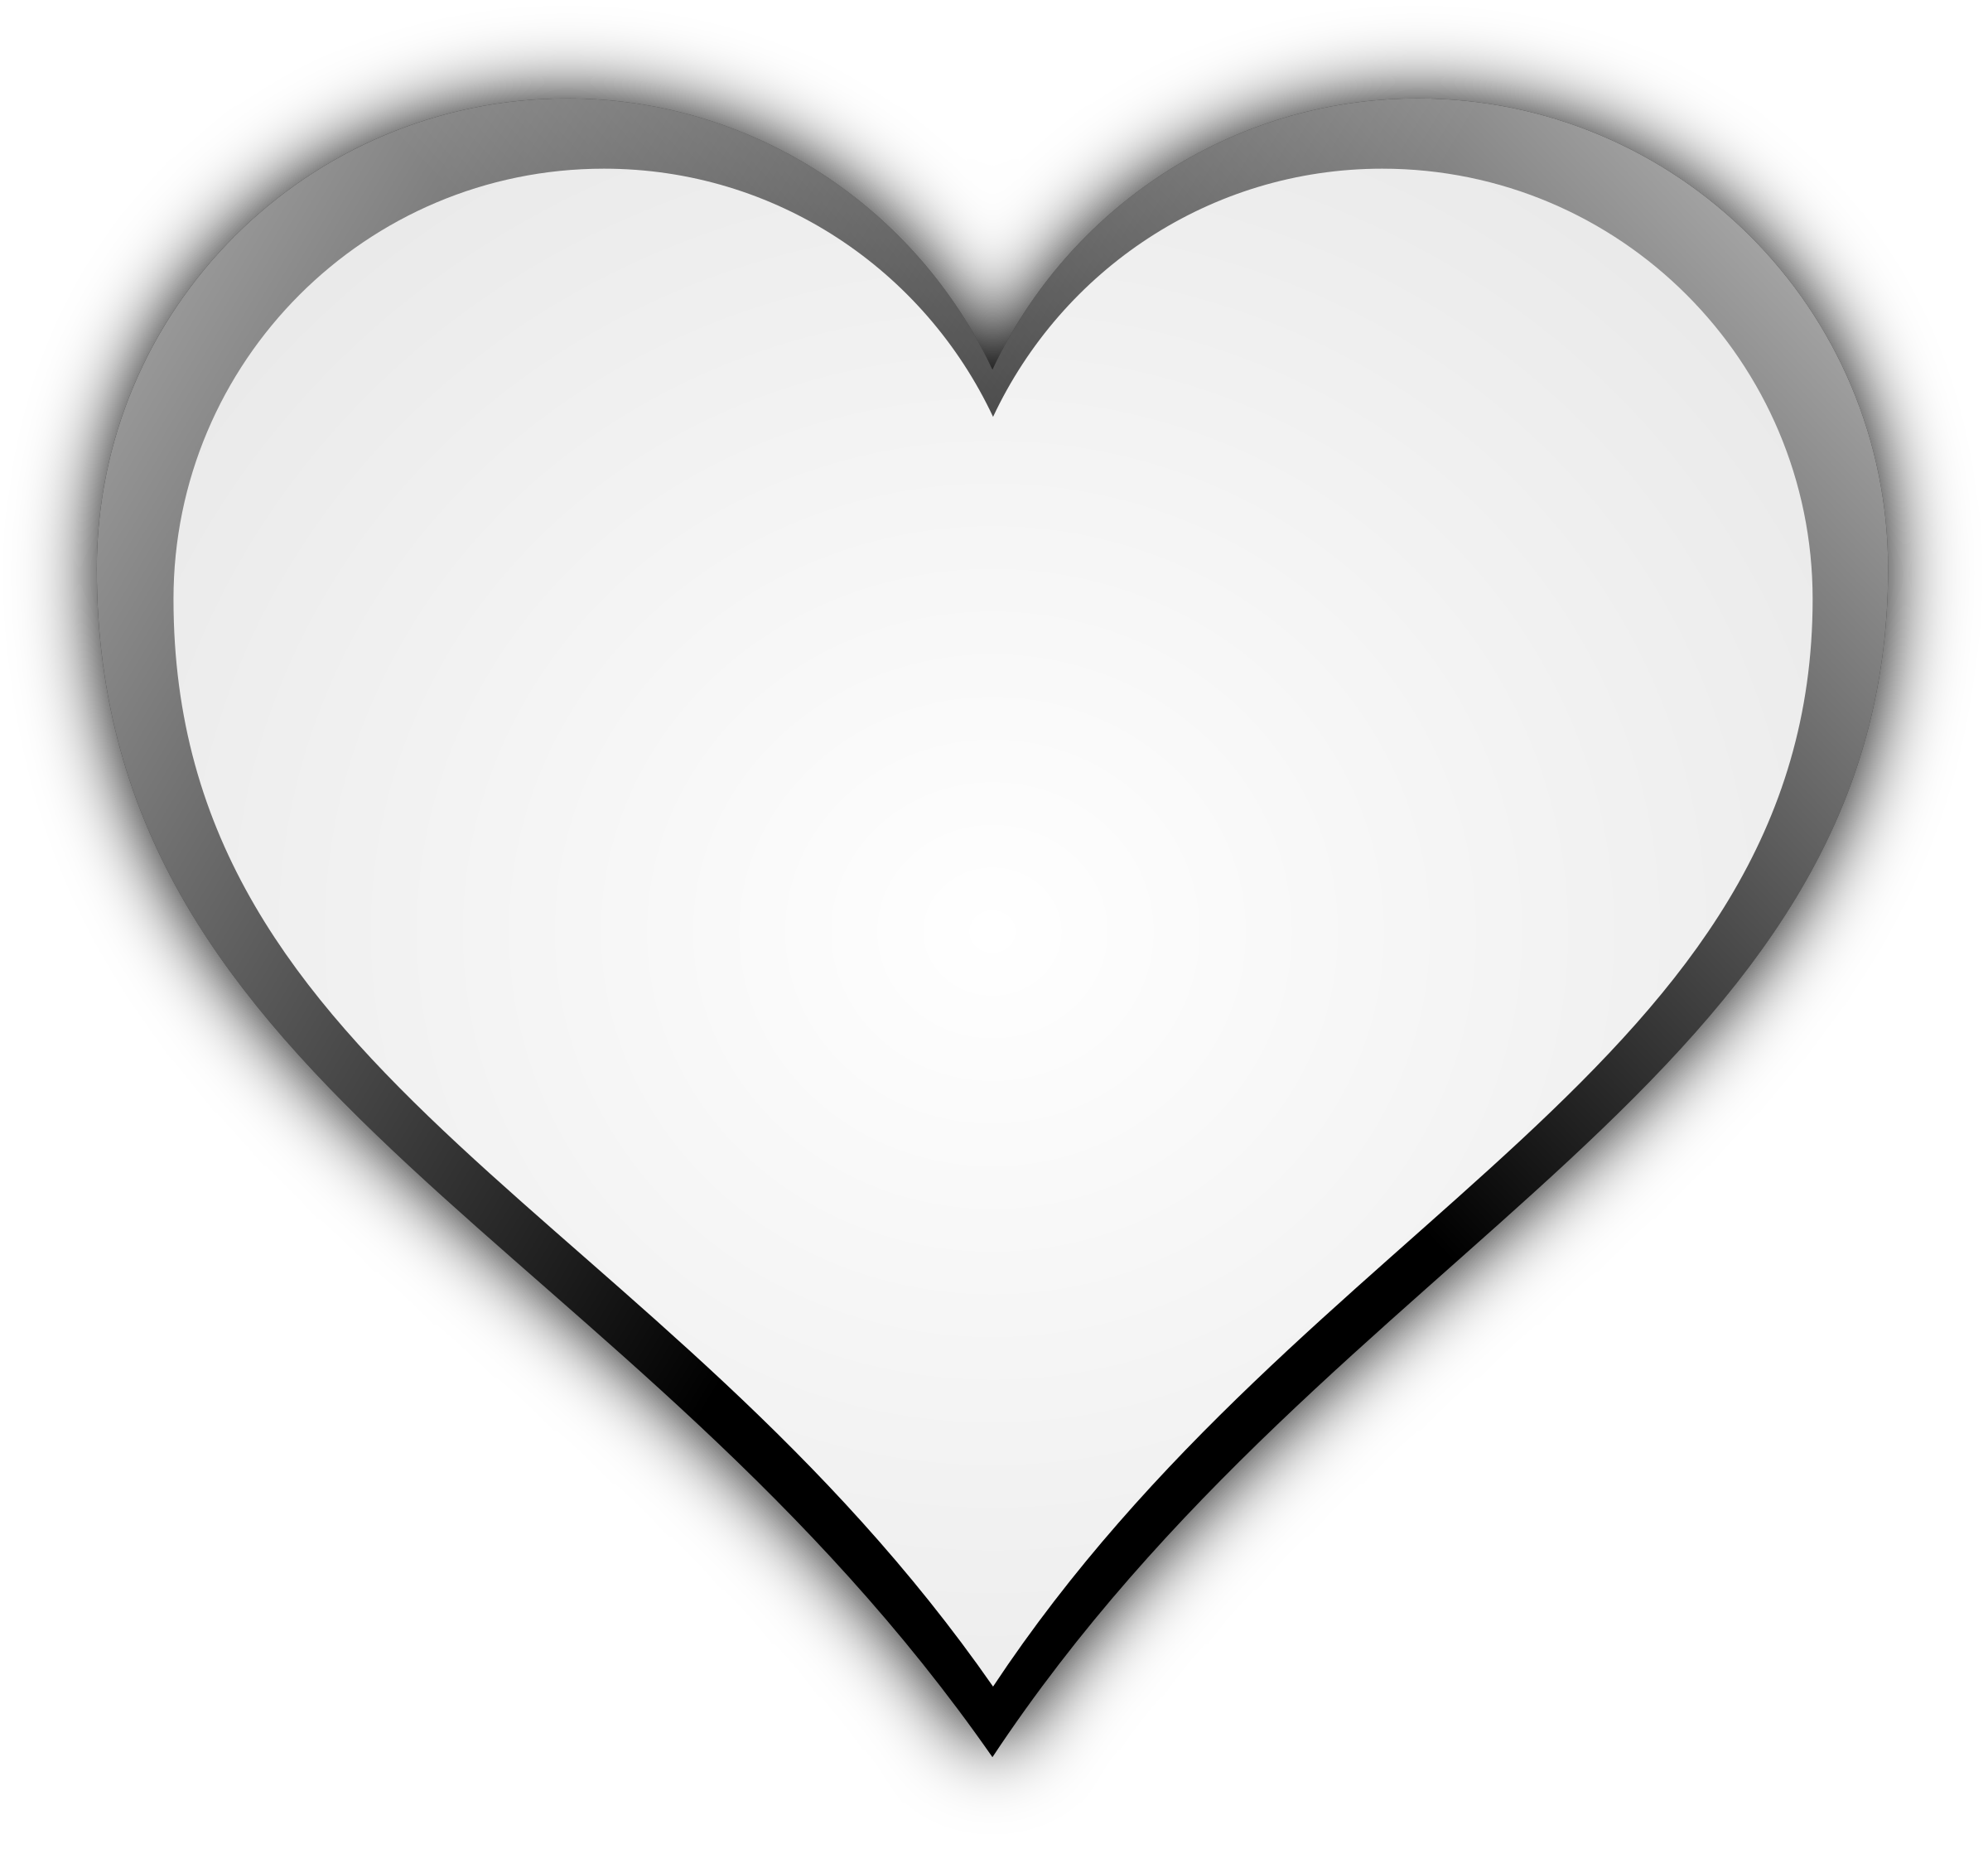 Heart box clipart black and white svg transparent Clipart - Heart svg transparent